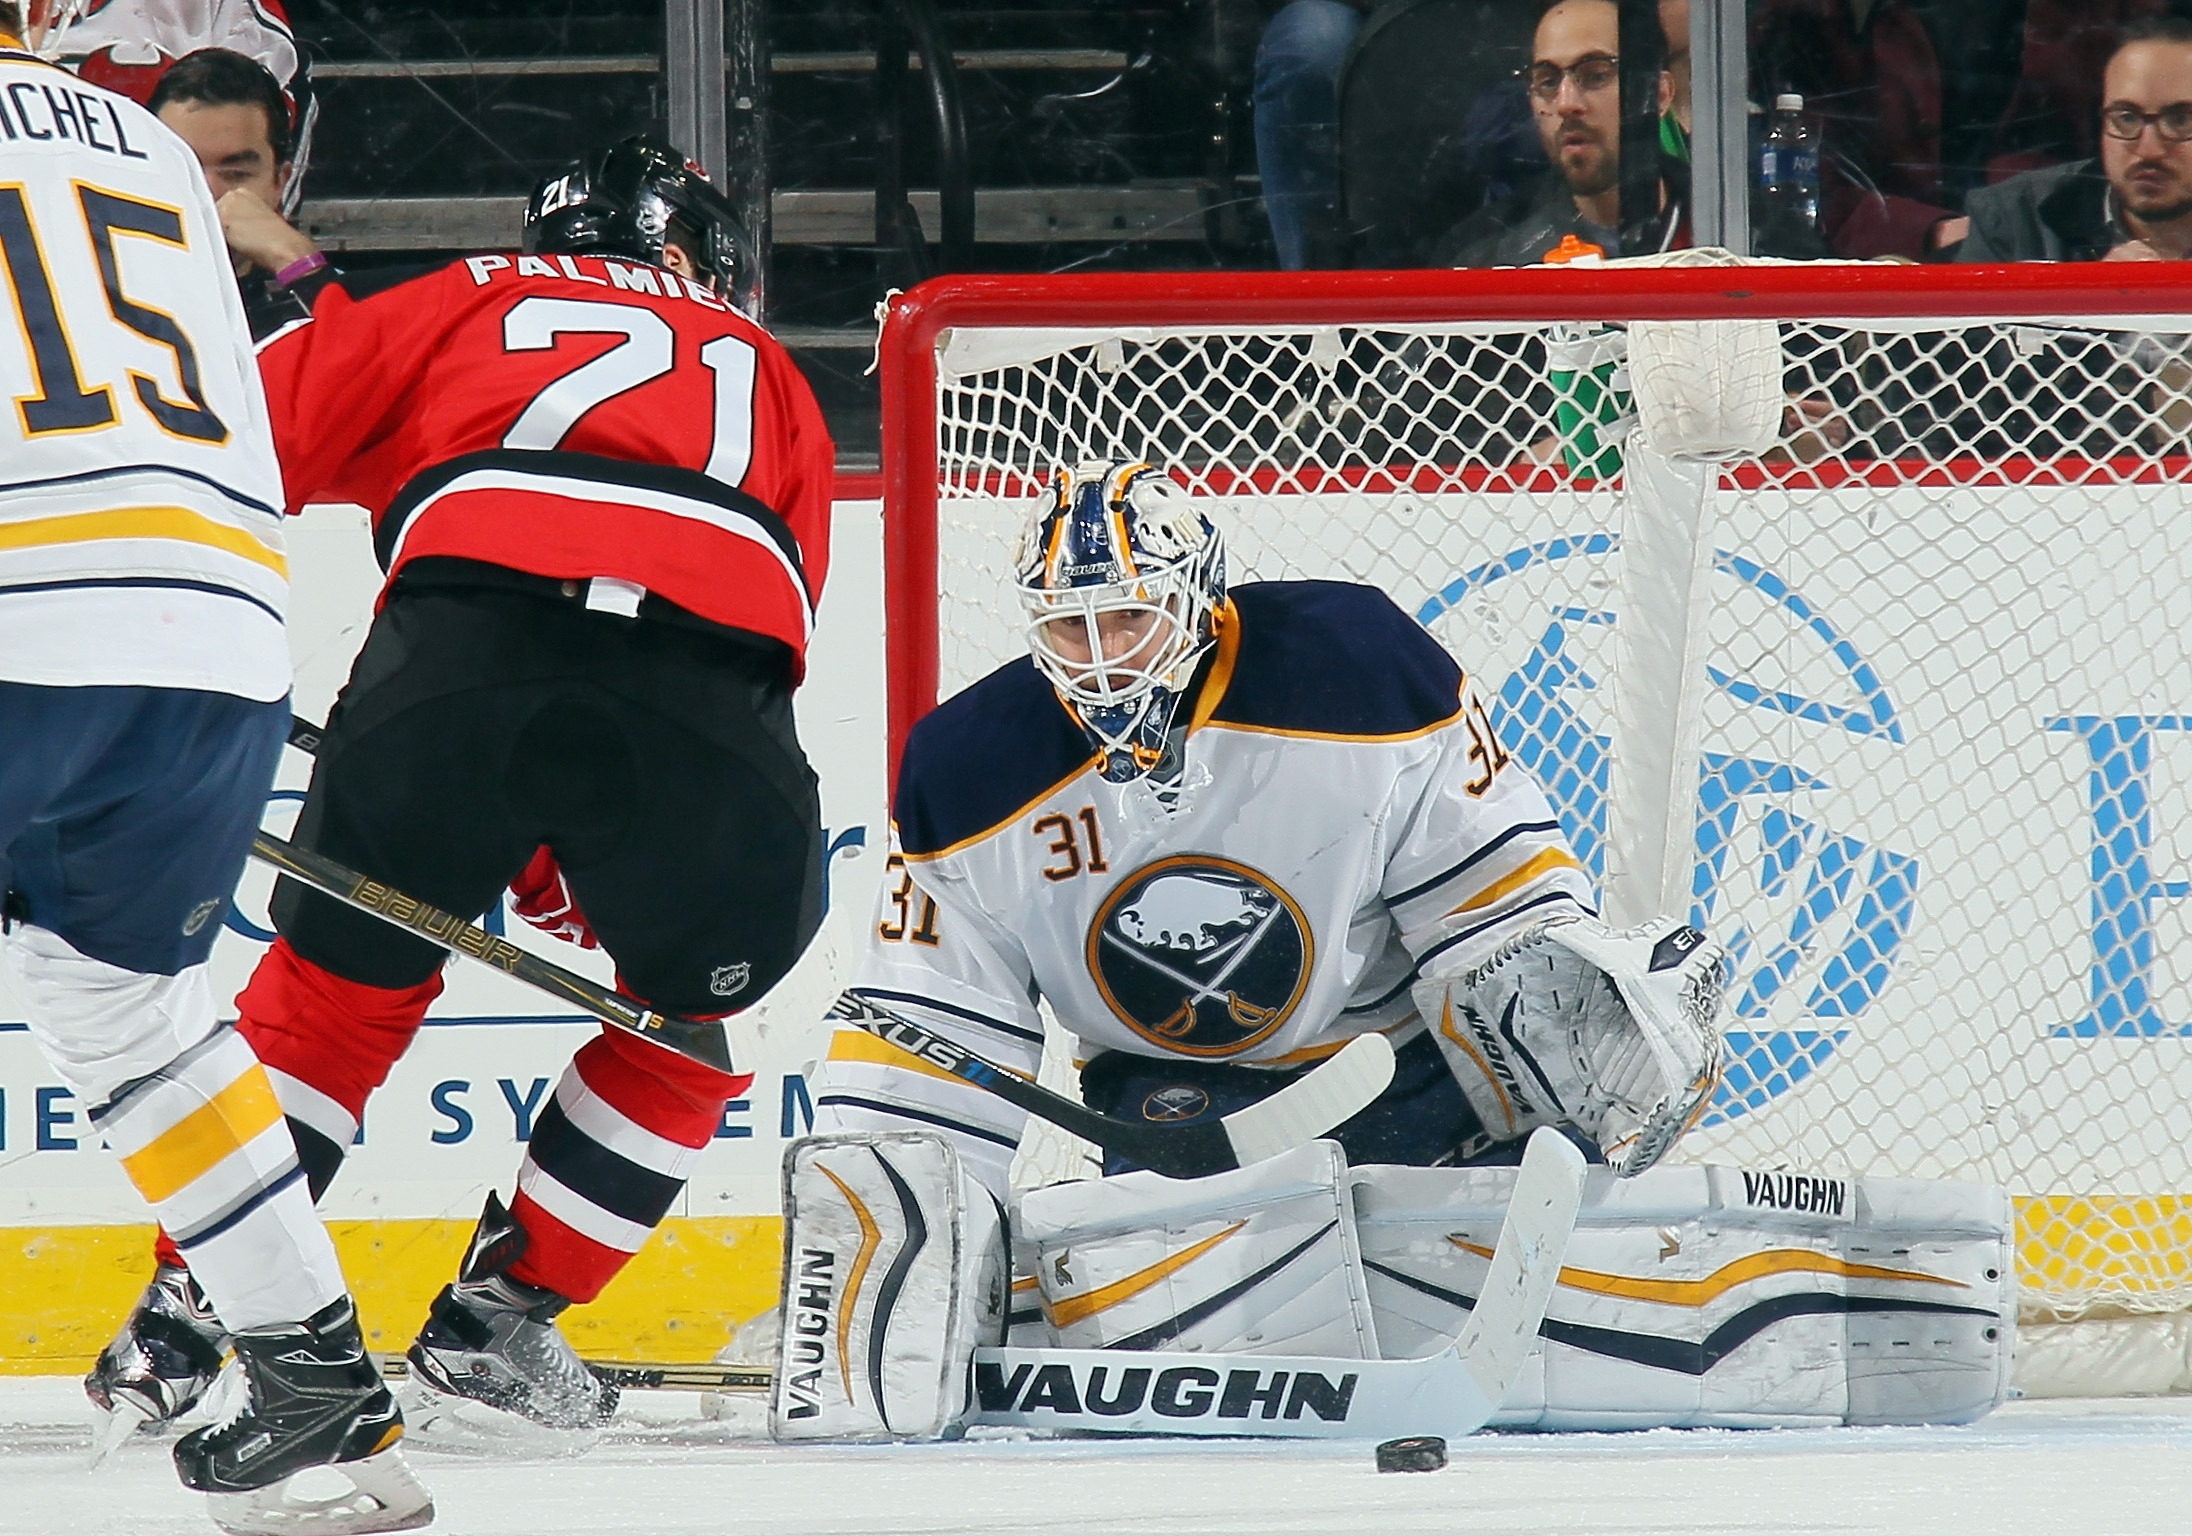 Buffalo's Chad Johnson makes a first-period save on Kyle Palmieri.